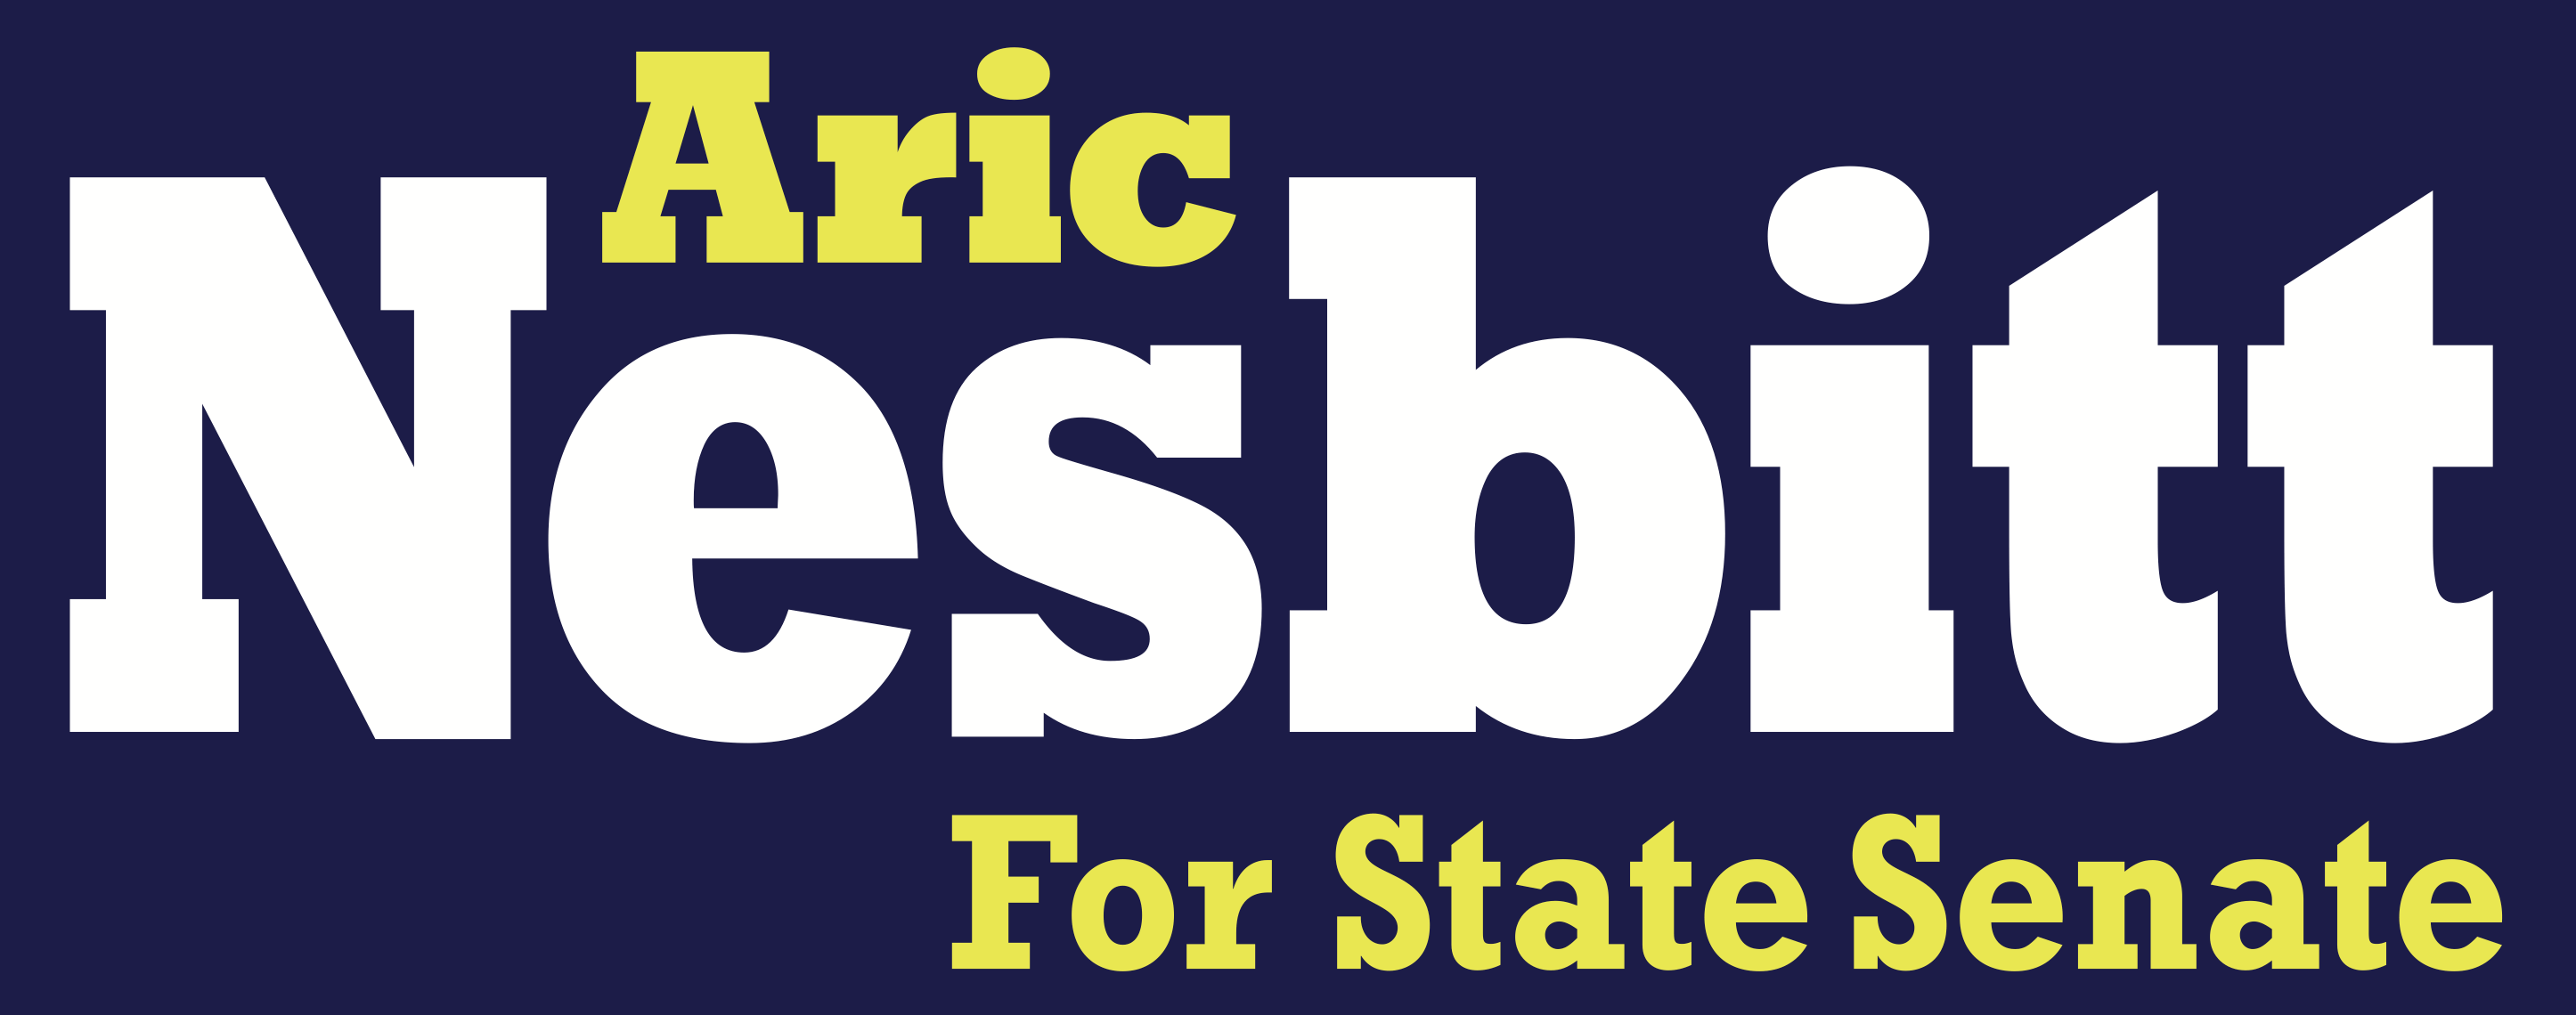 Aric Nesbitt for State Senate